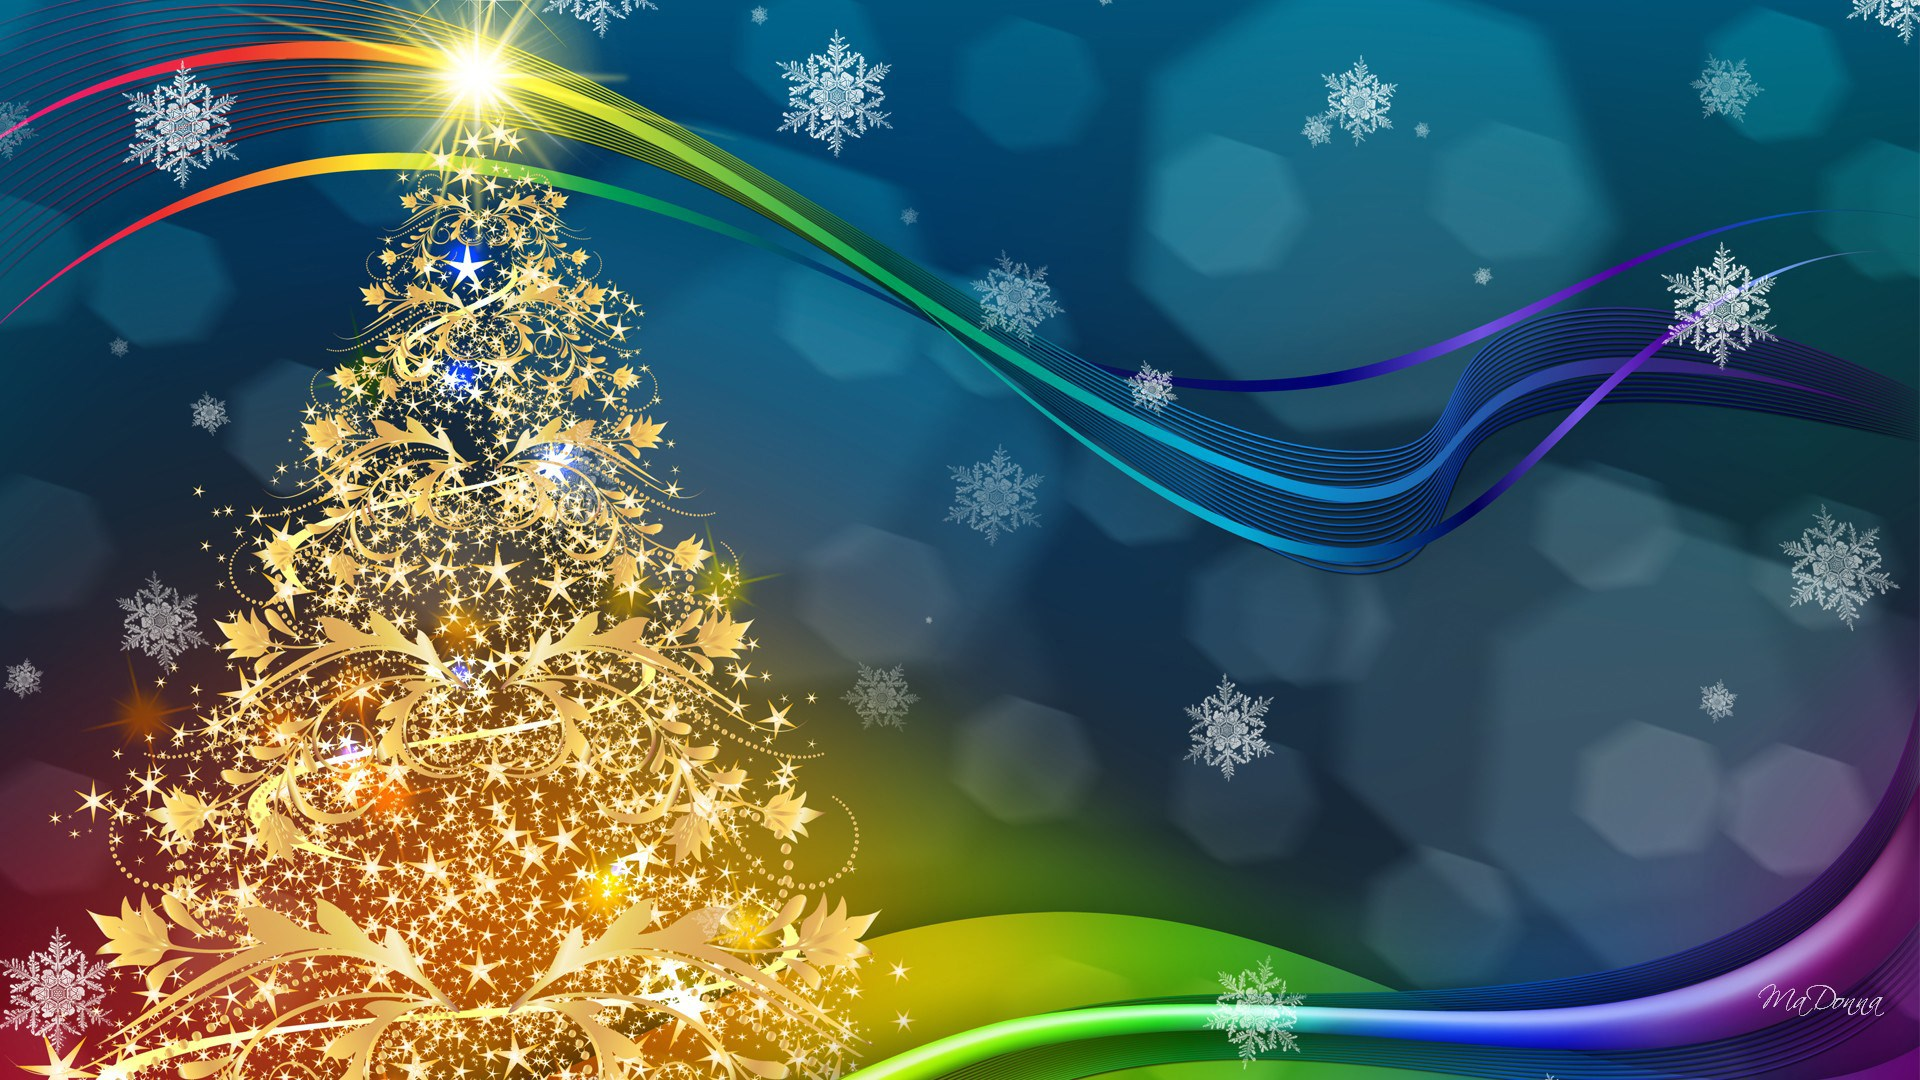 1920x1080-hd-christmas-wallpaper-wpc900807